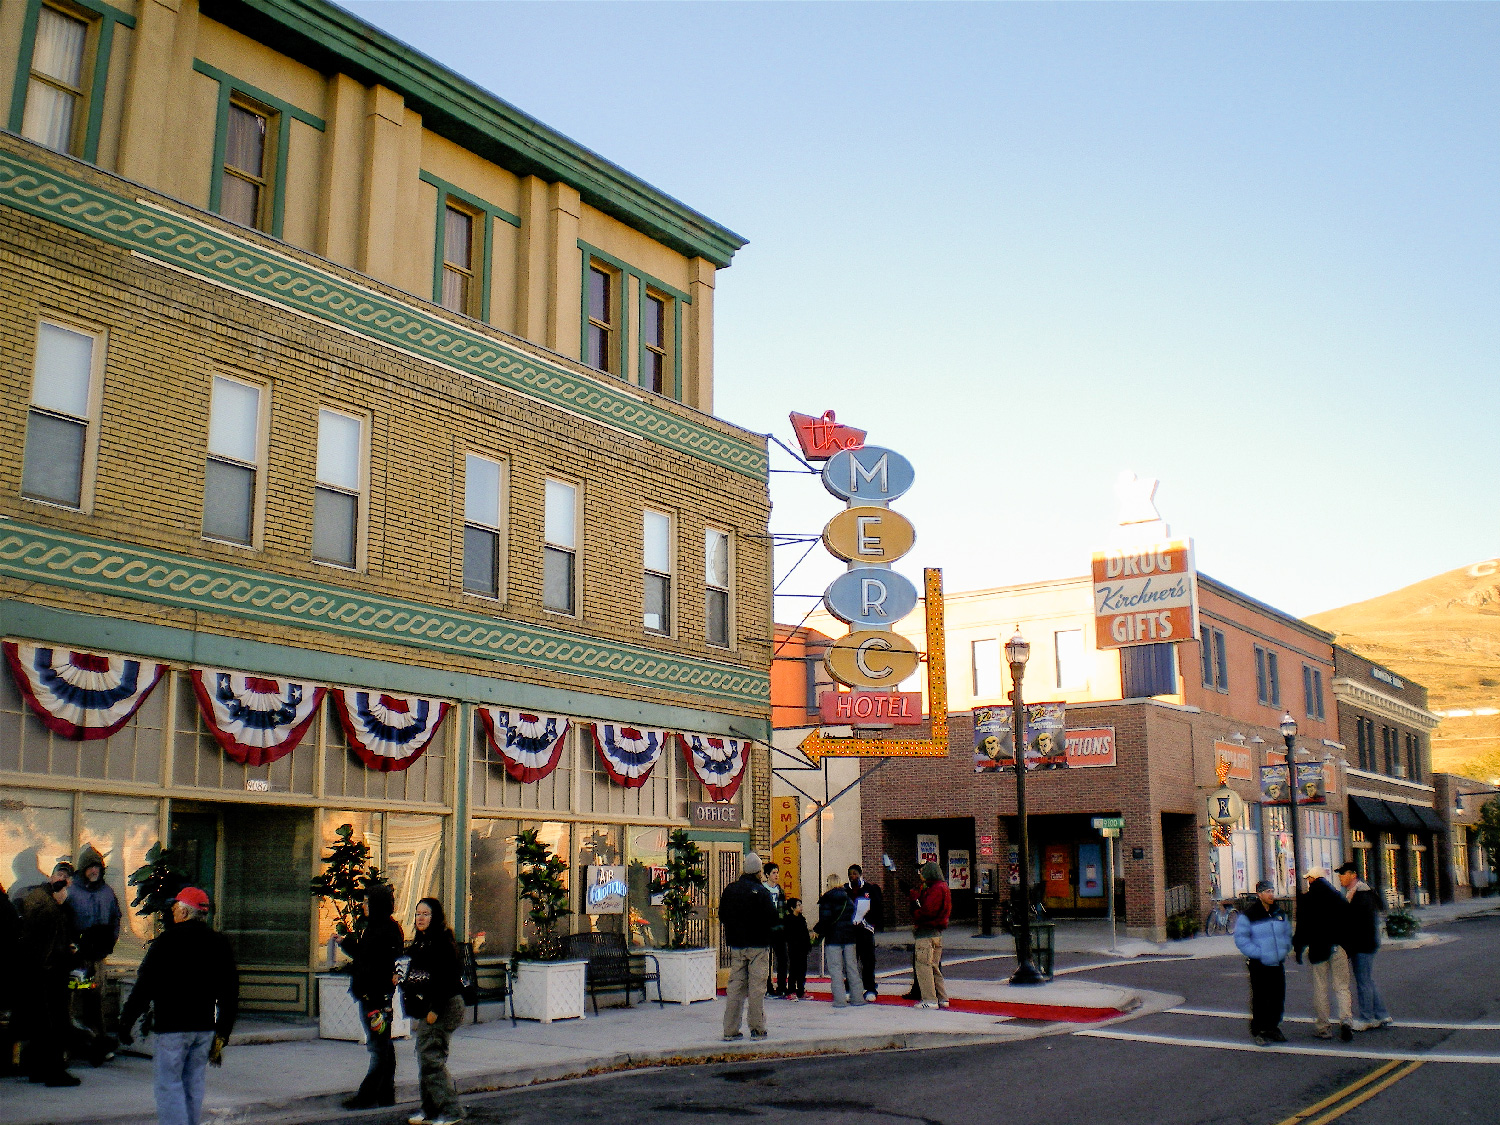 """Main street of a route-66-style fictional town """"Mercury"""". Here we added a third story, huge neon signage and facade details to the foreground """"Merc"""" hotel, and a second story and signage to the background drugstore in this shot."""